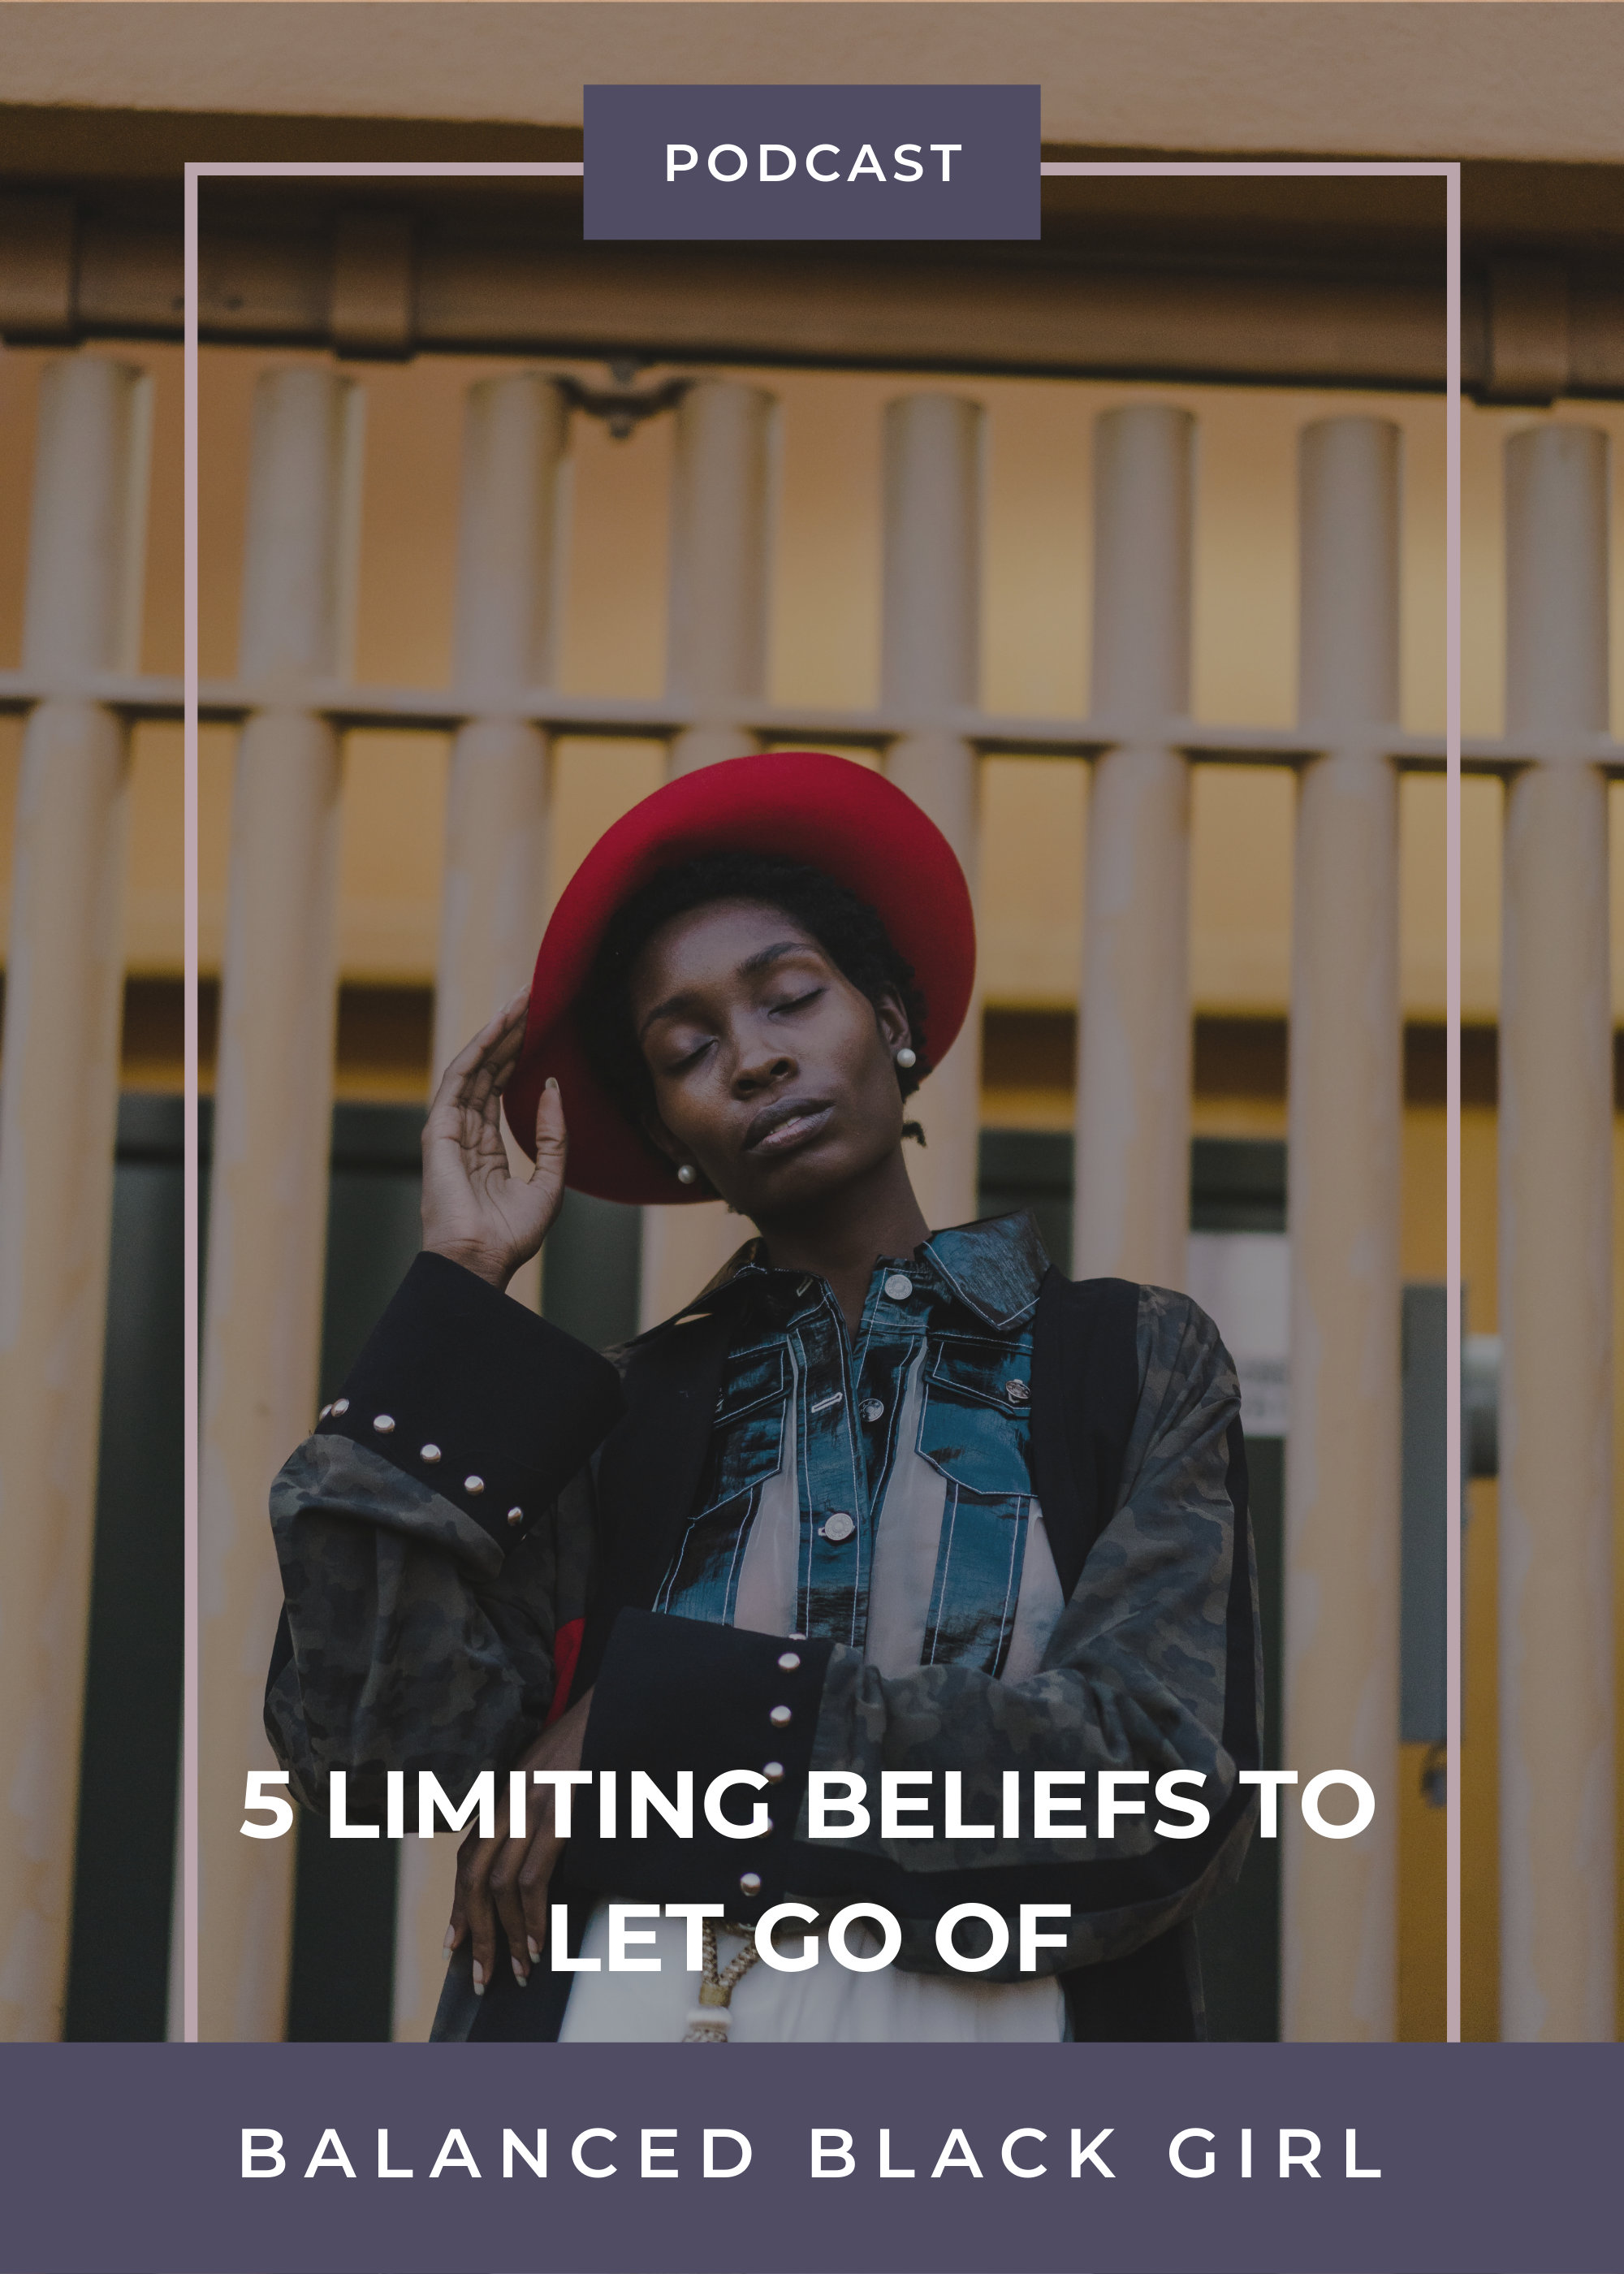 5 Limiting Beliefs to Let Go Of | Balanced Black Girl Podcast